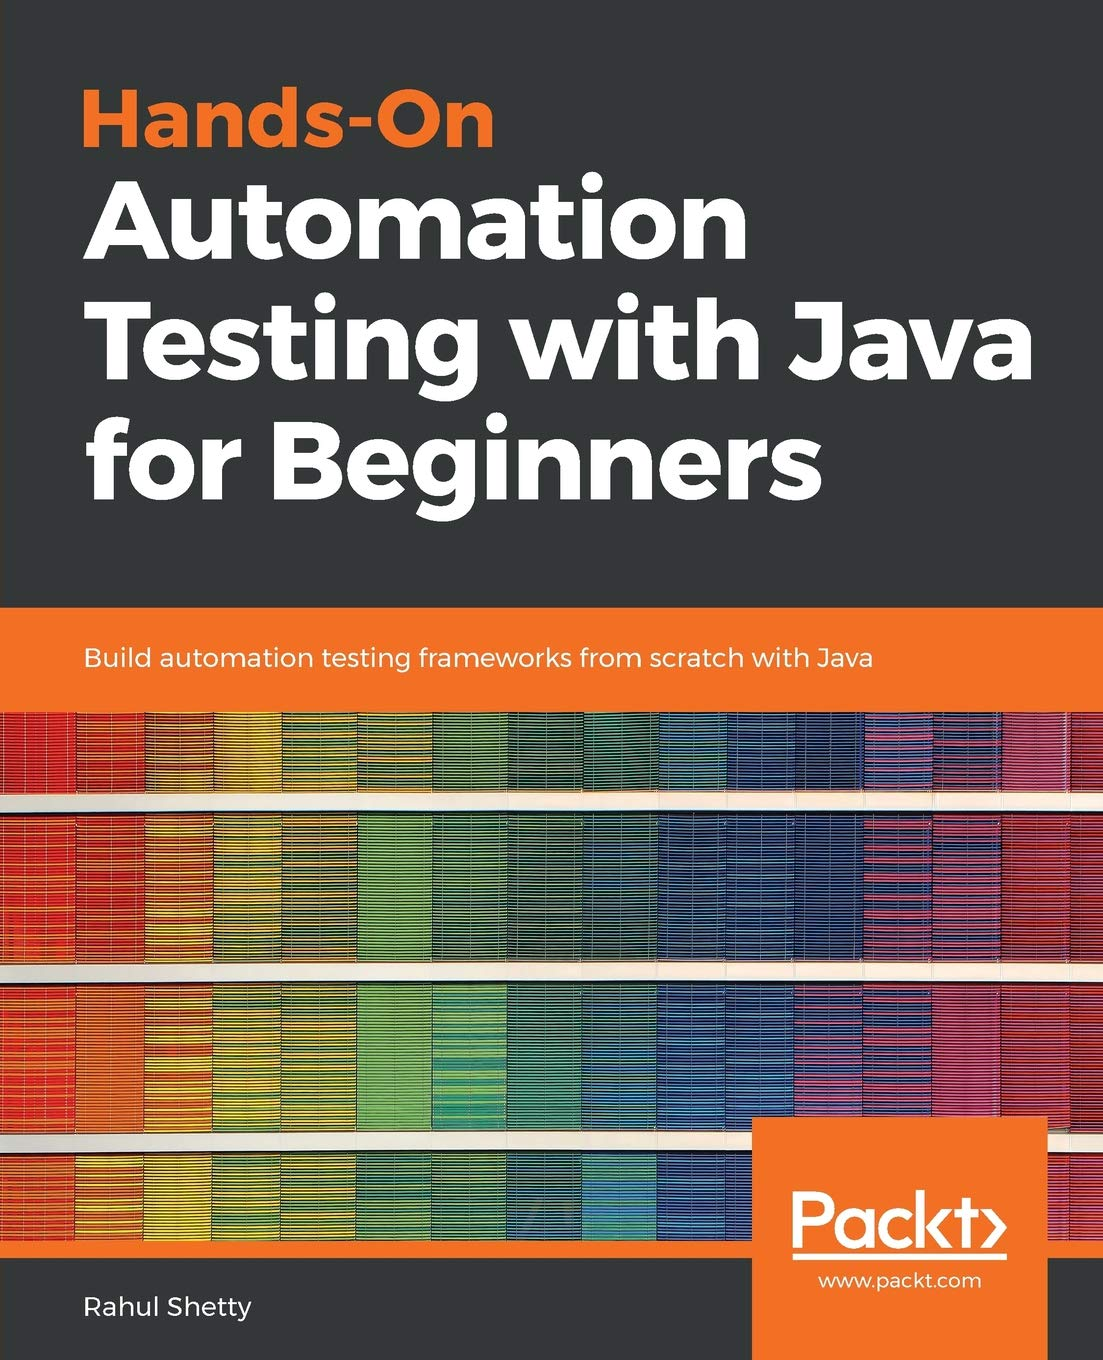 Hands-On Automation Testing with Java for Beginners: Build